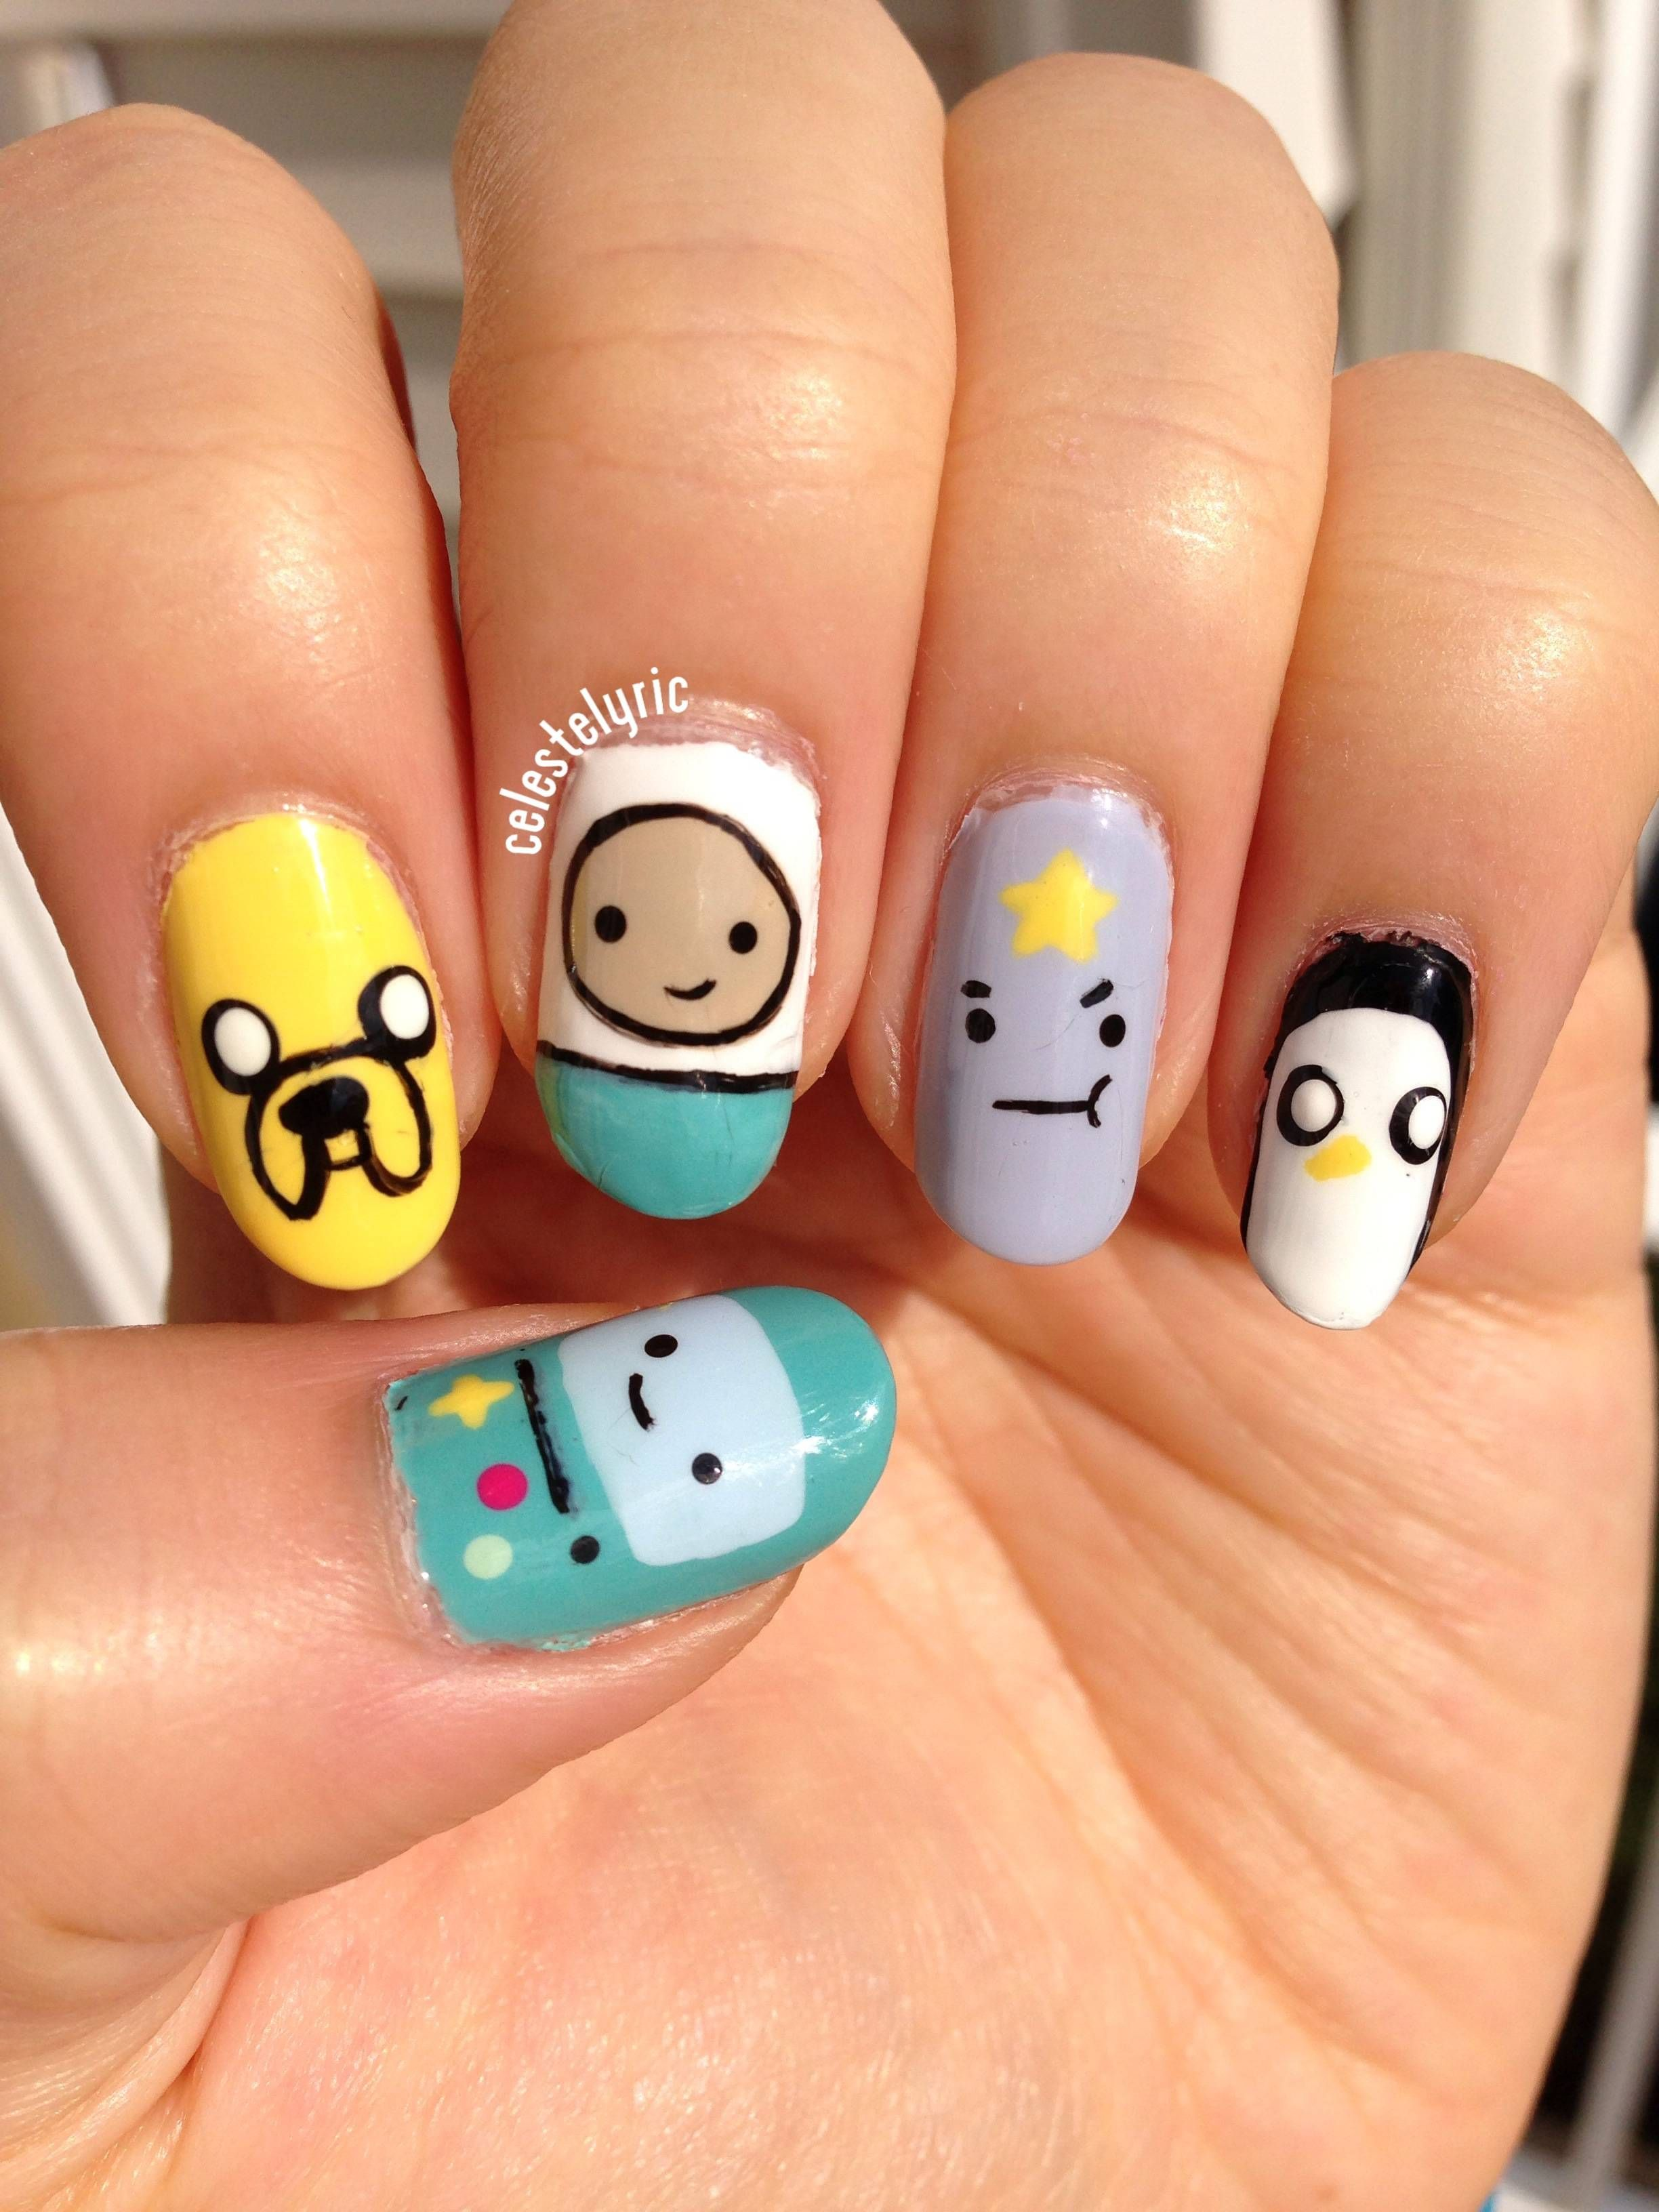 Adventure Time nail art on Pinterest | Adventure Time Nails, Lumpy